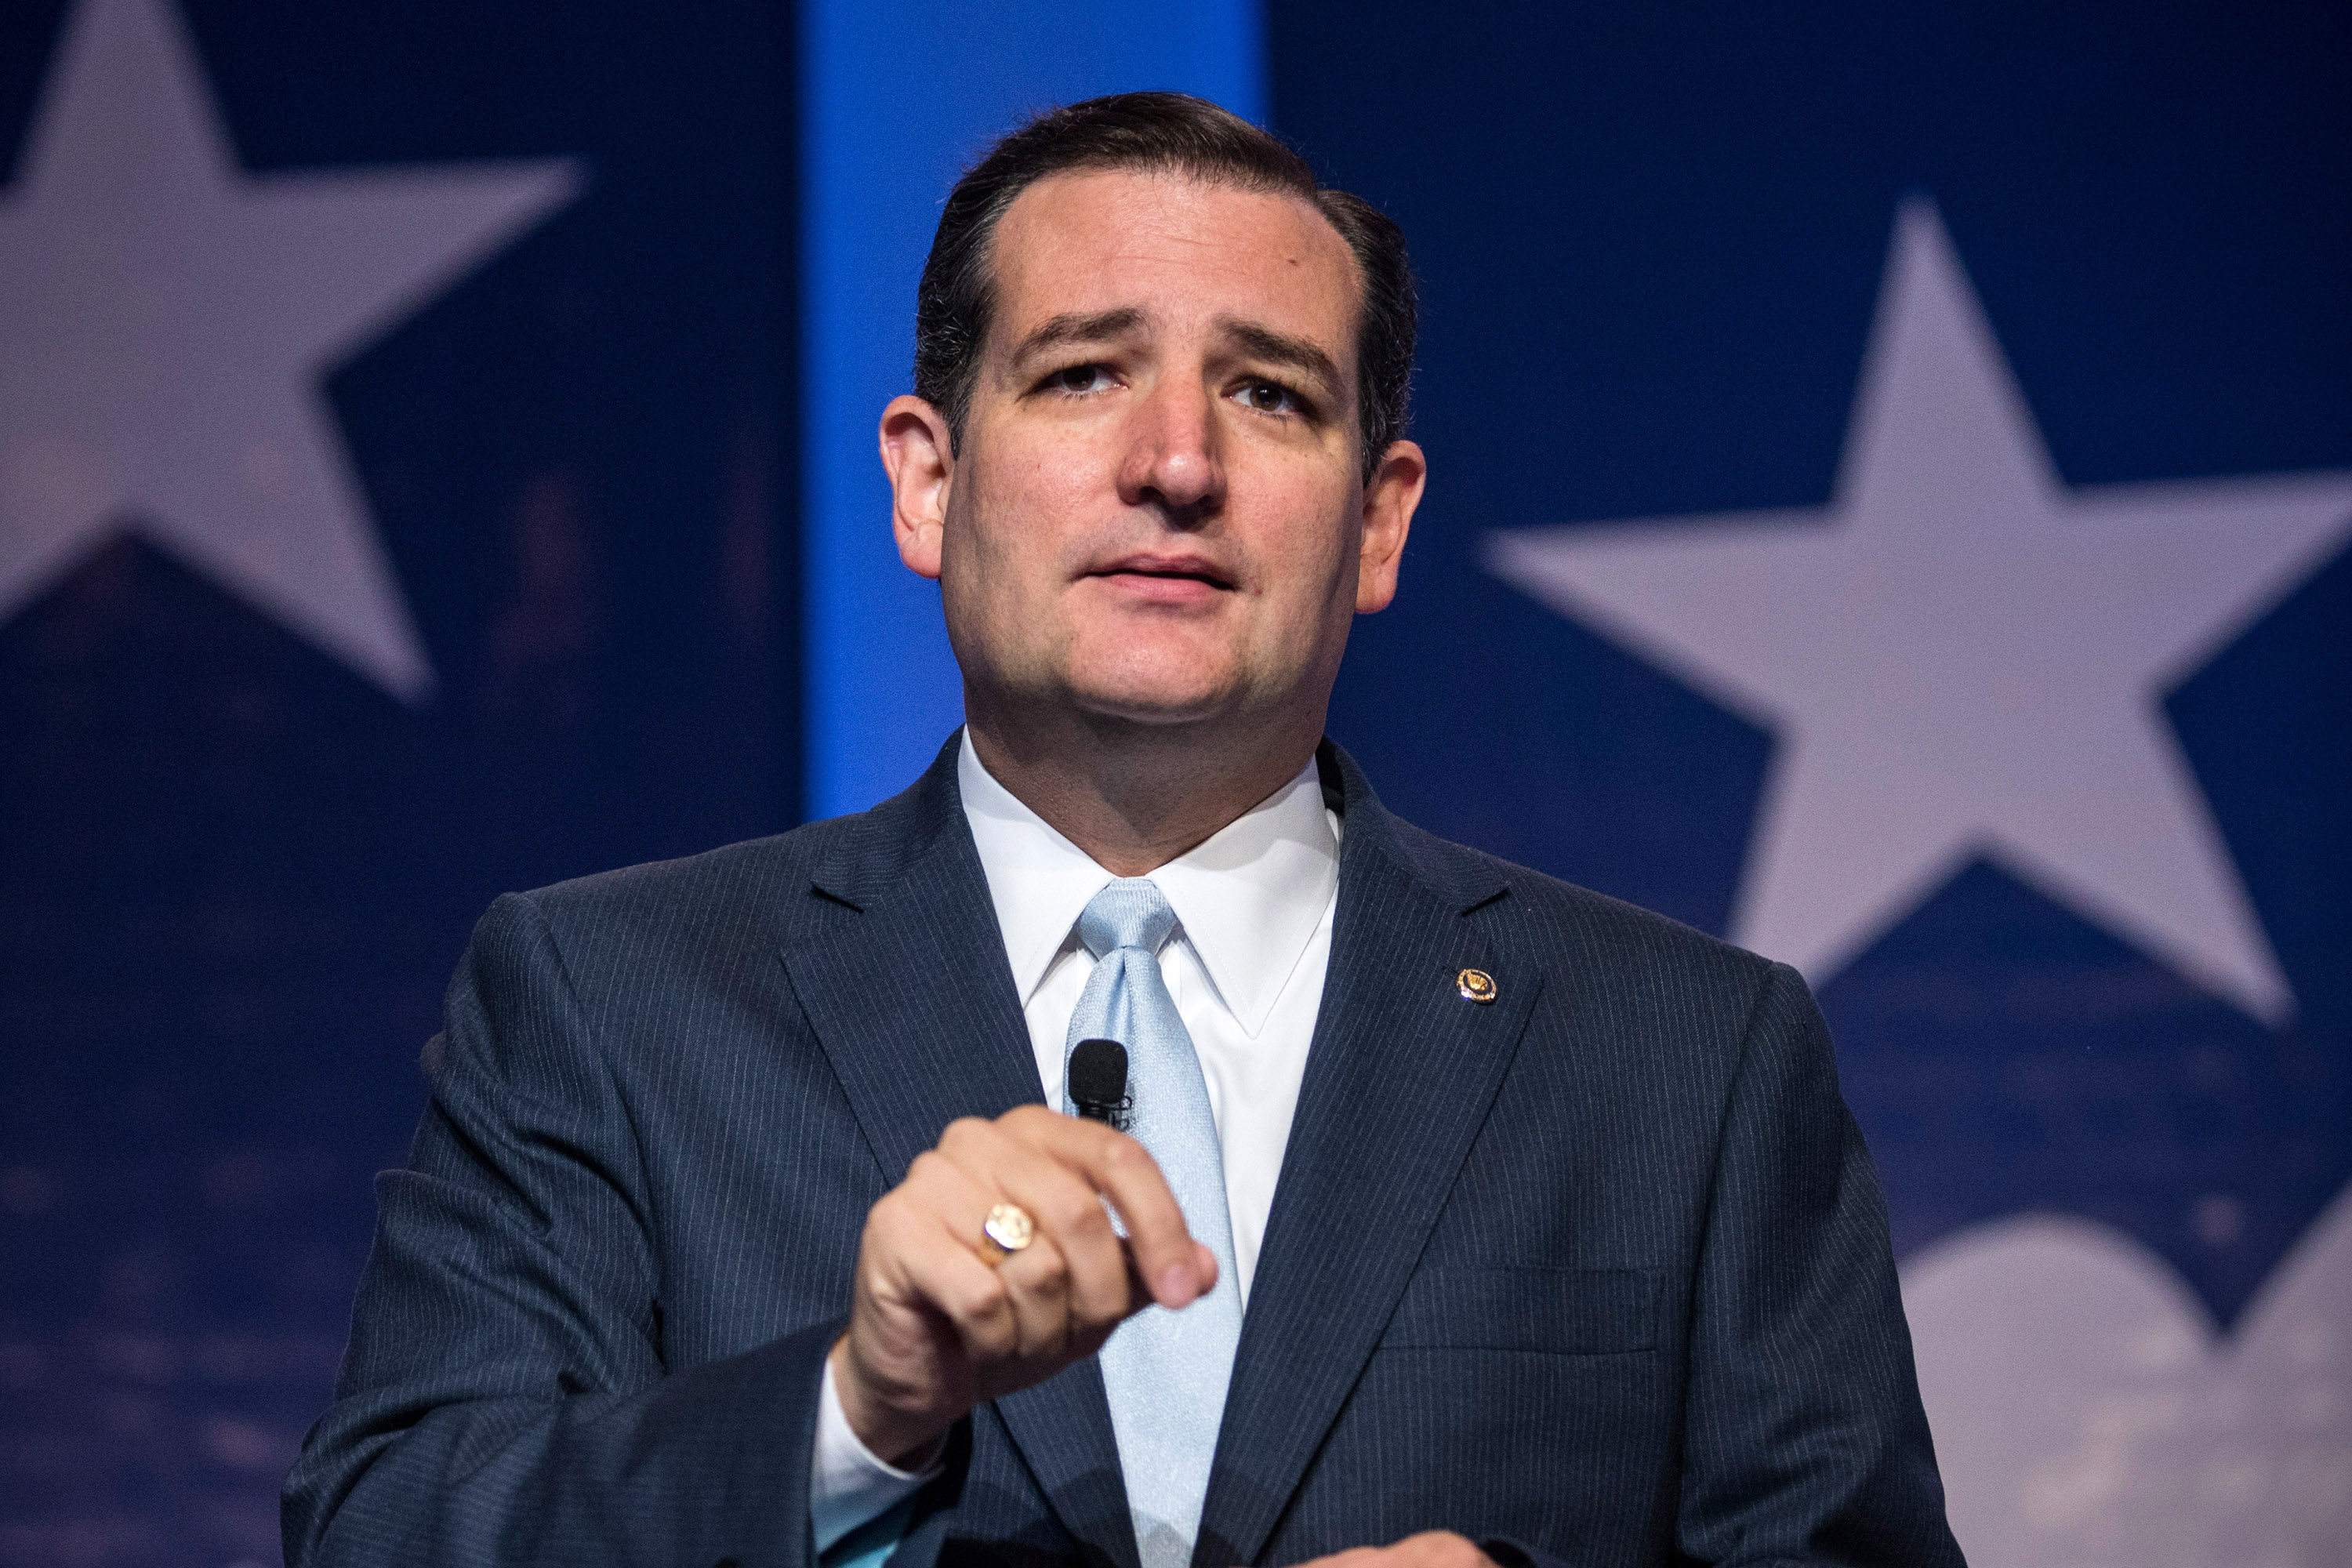 Senator Ted Cruz (R-TX), speaks at the 2013 Values Voter Summit, held by the Family Research Council, on October 11, 2013 in Washington, DC.